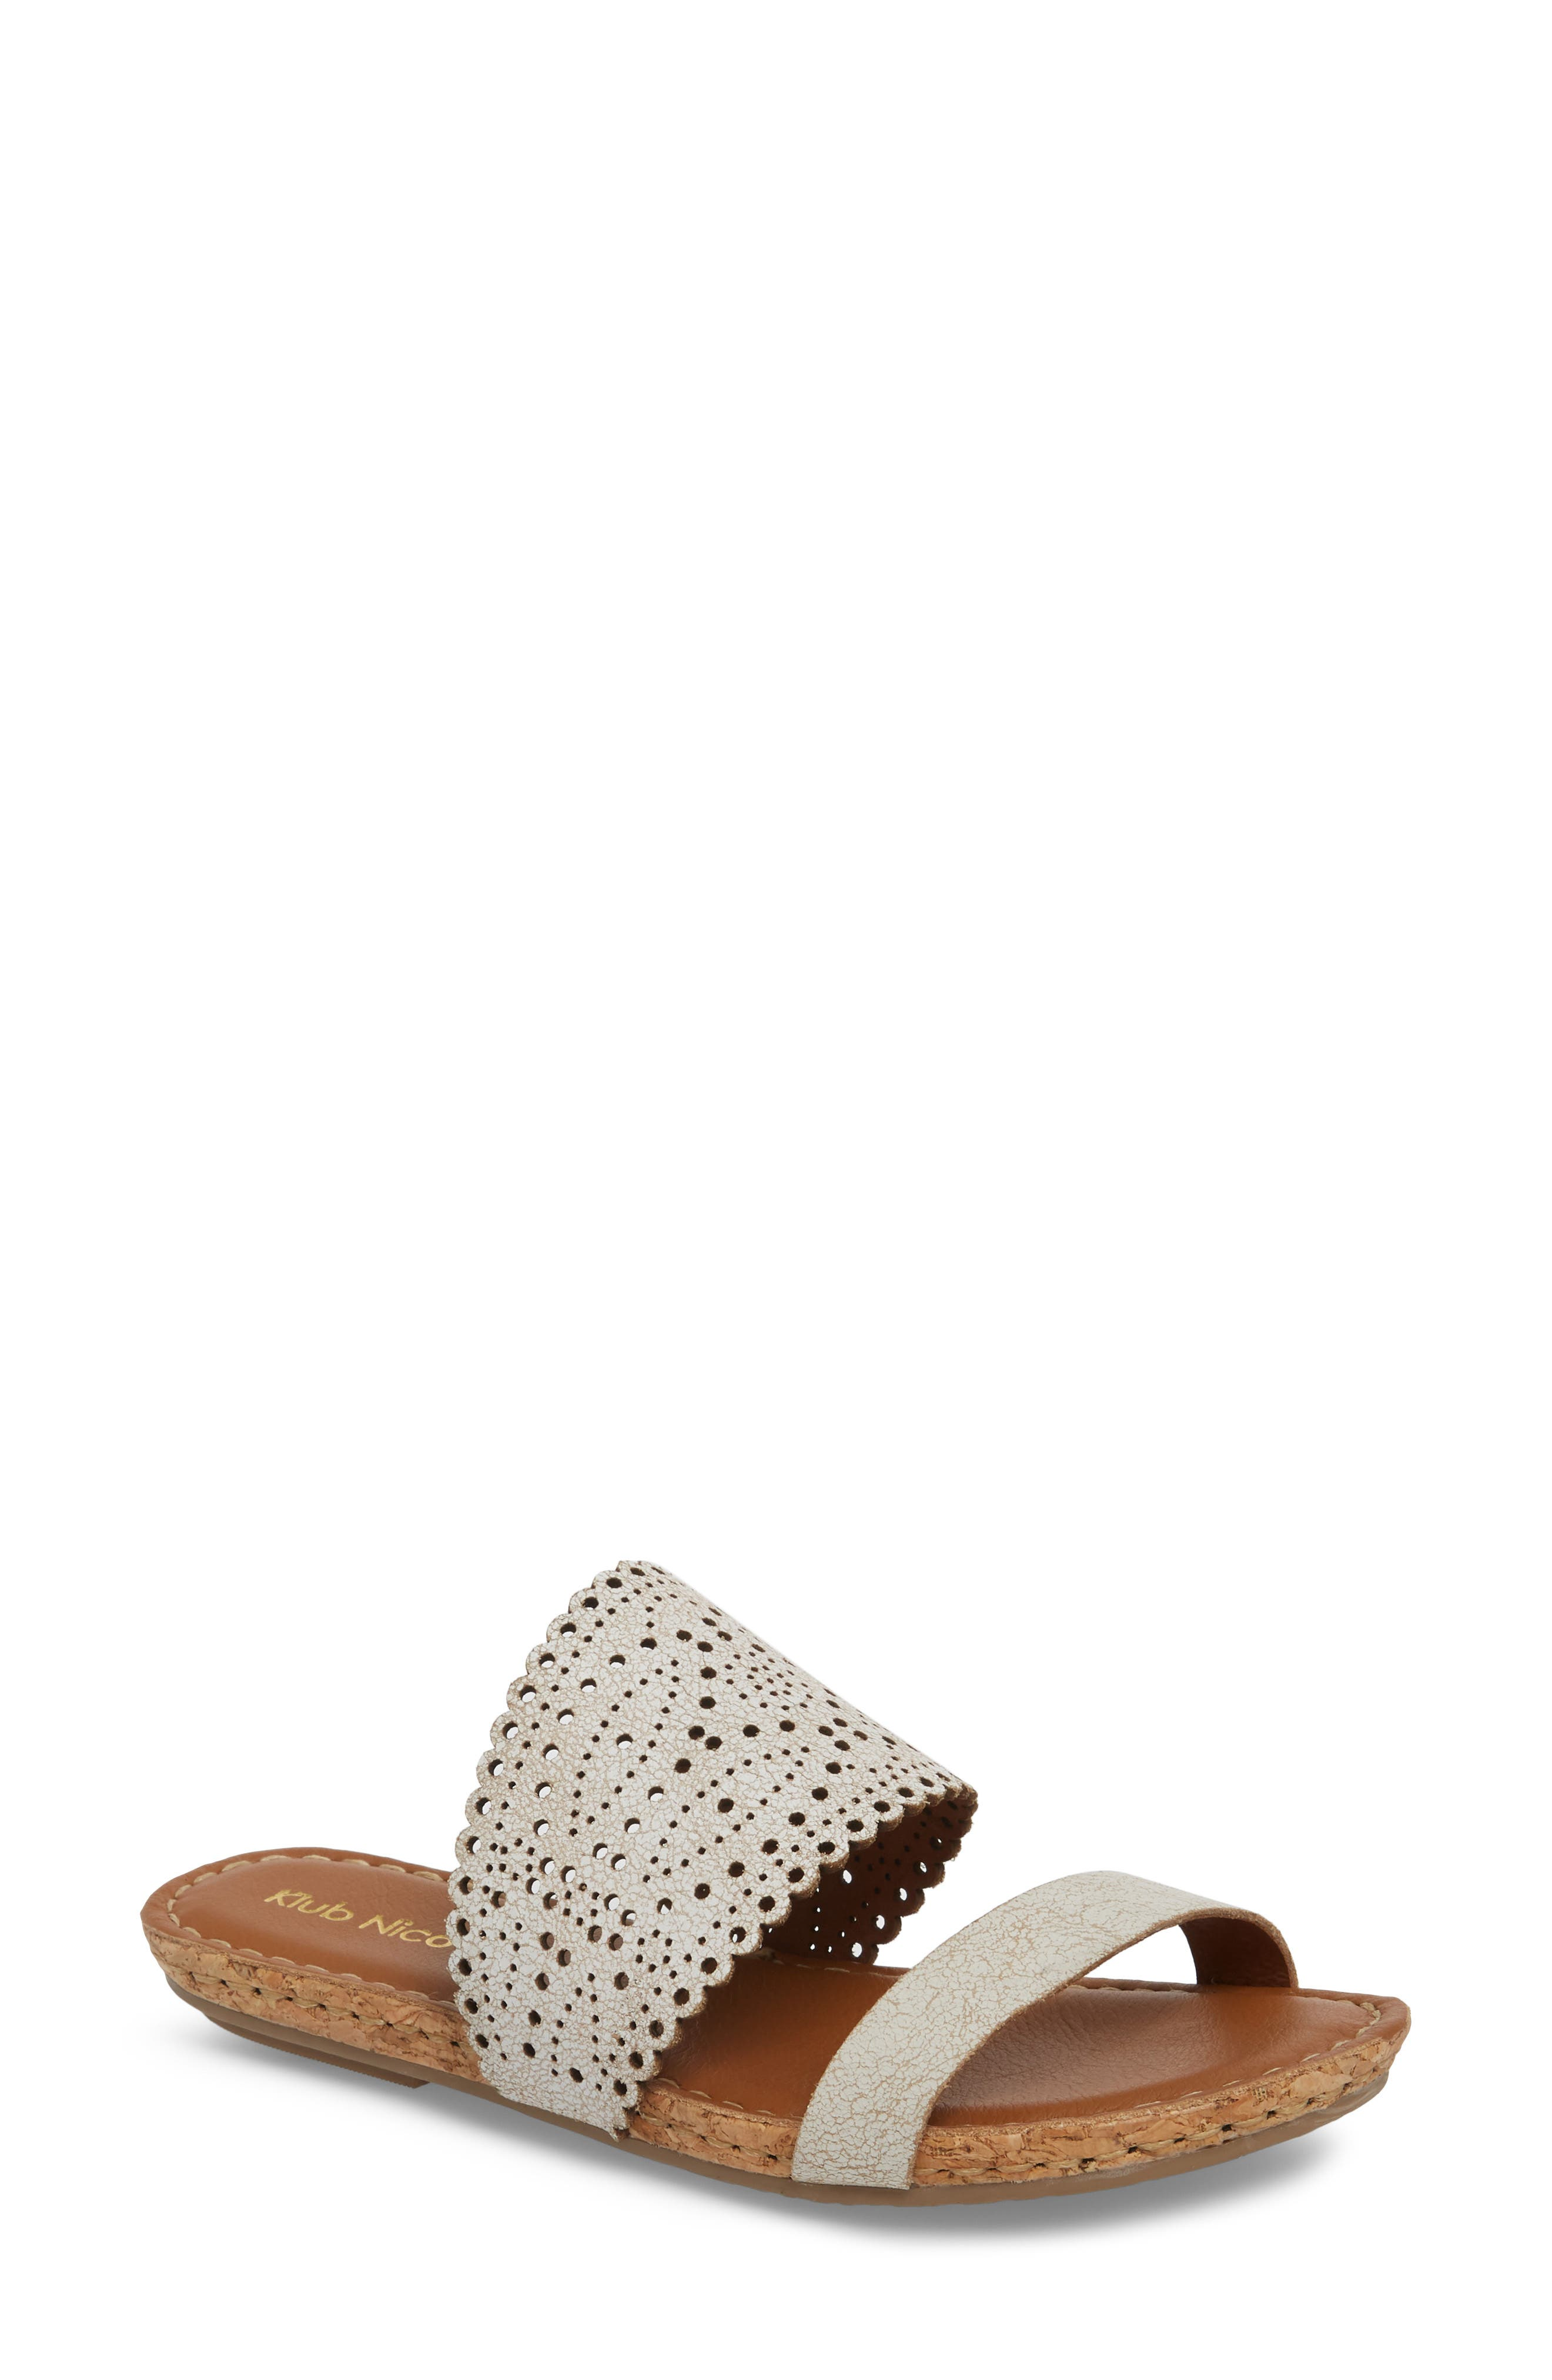 KLUB NICO Ginette Perforated Slide Sandal, Main, color, WHITE LEATHER